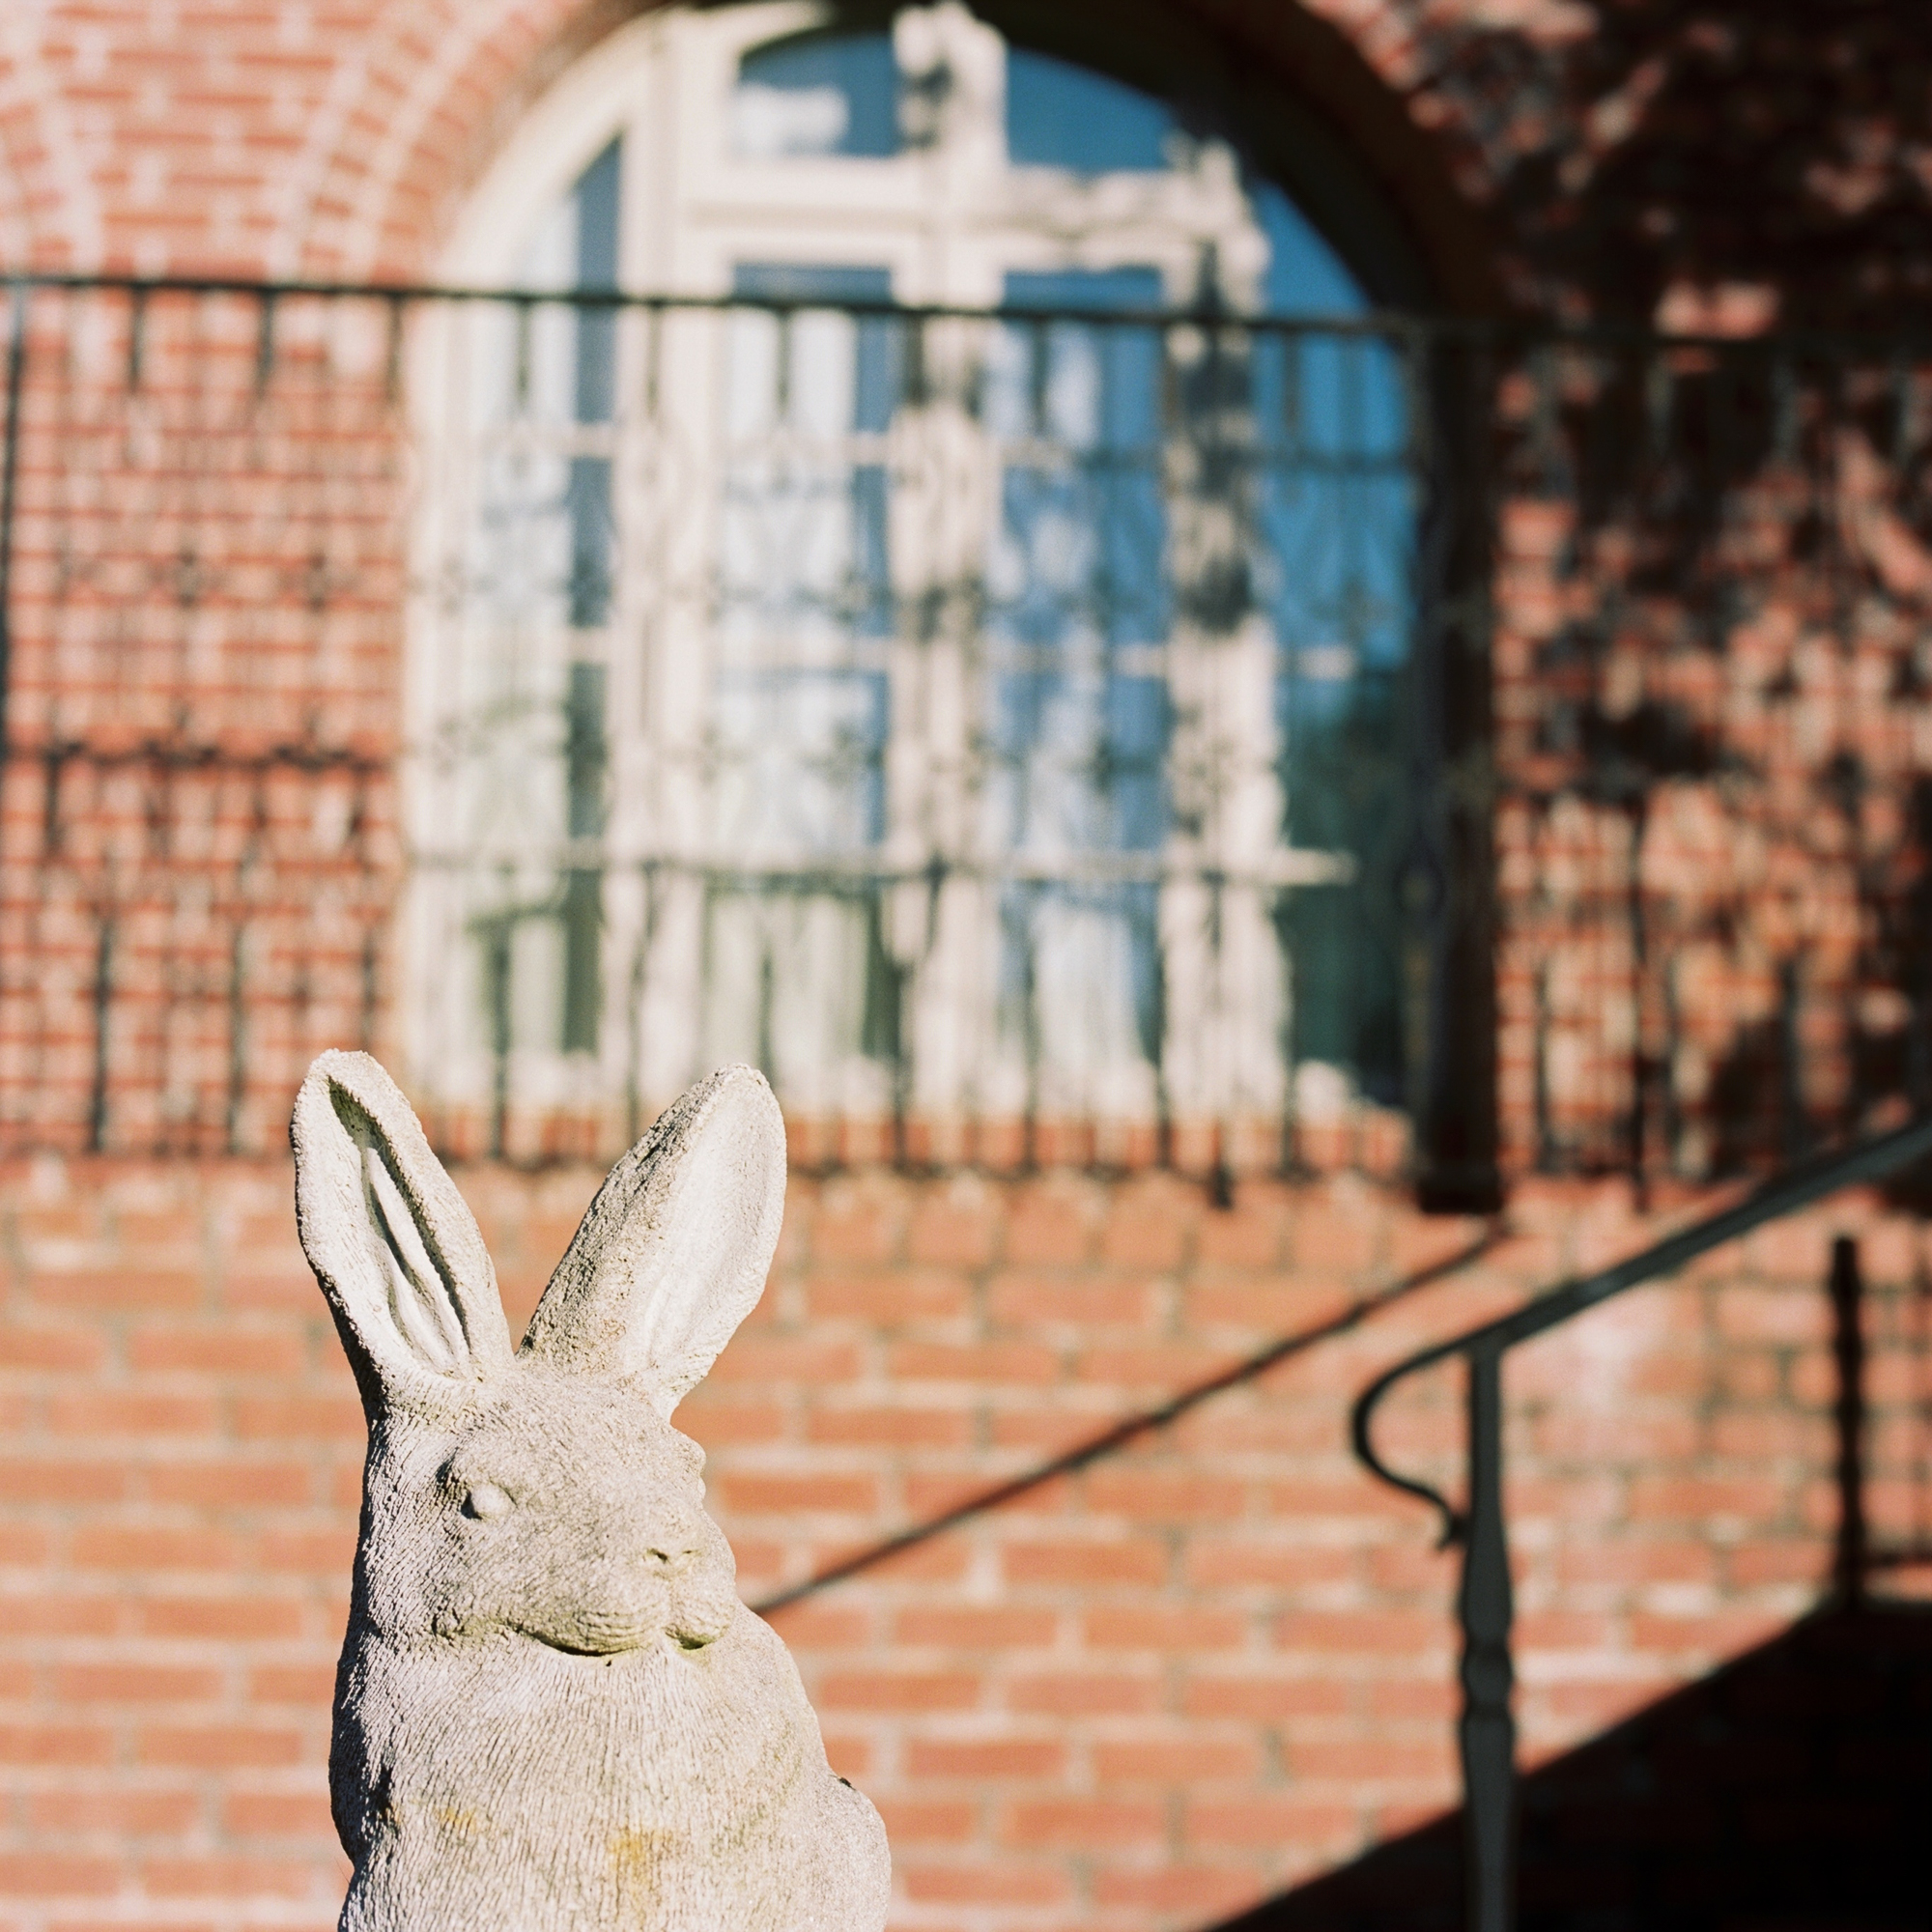 lost rabbit ms southern lifestyle commercial photography for realty developments ©2017abigailbobophotography-39.jpg